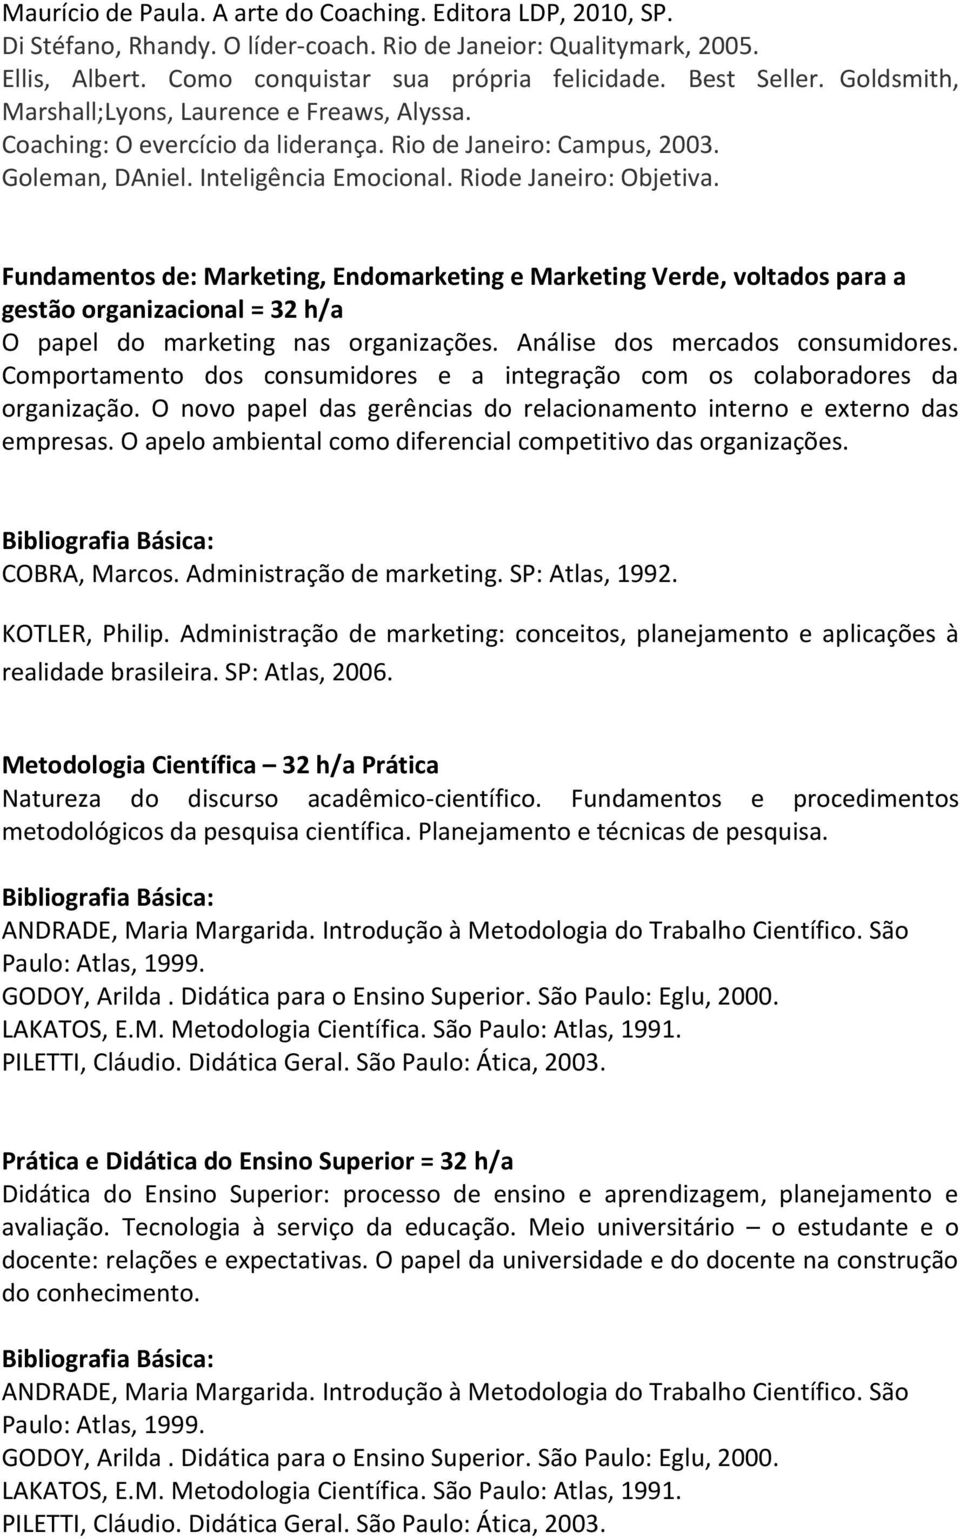 Fundamentos de: Marketing, Endomarketing e Marketing Verde, voltados para a gestão organizacional = 32 h/a O papel do marketing nas organizações. Análise dos mercados consumidores.